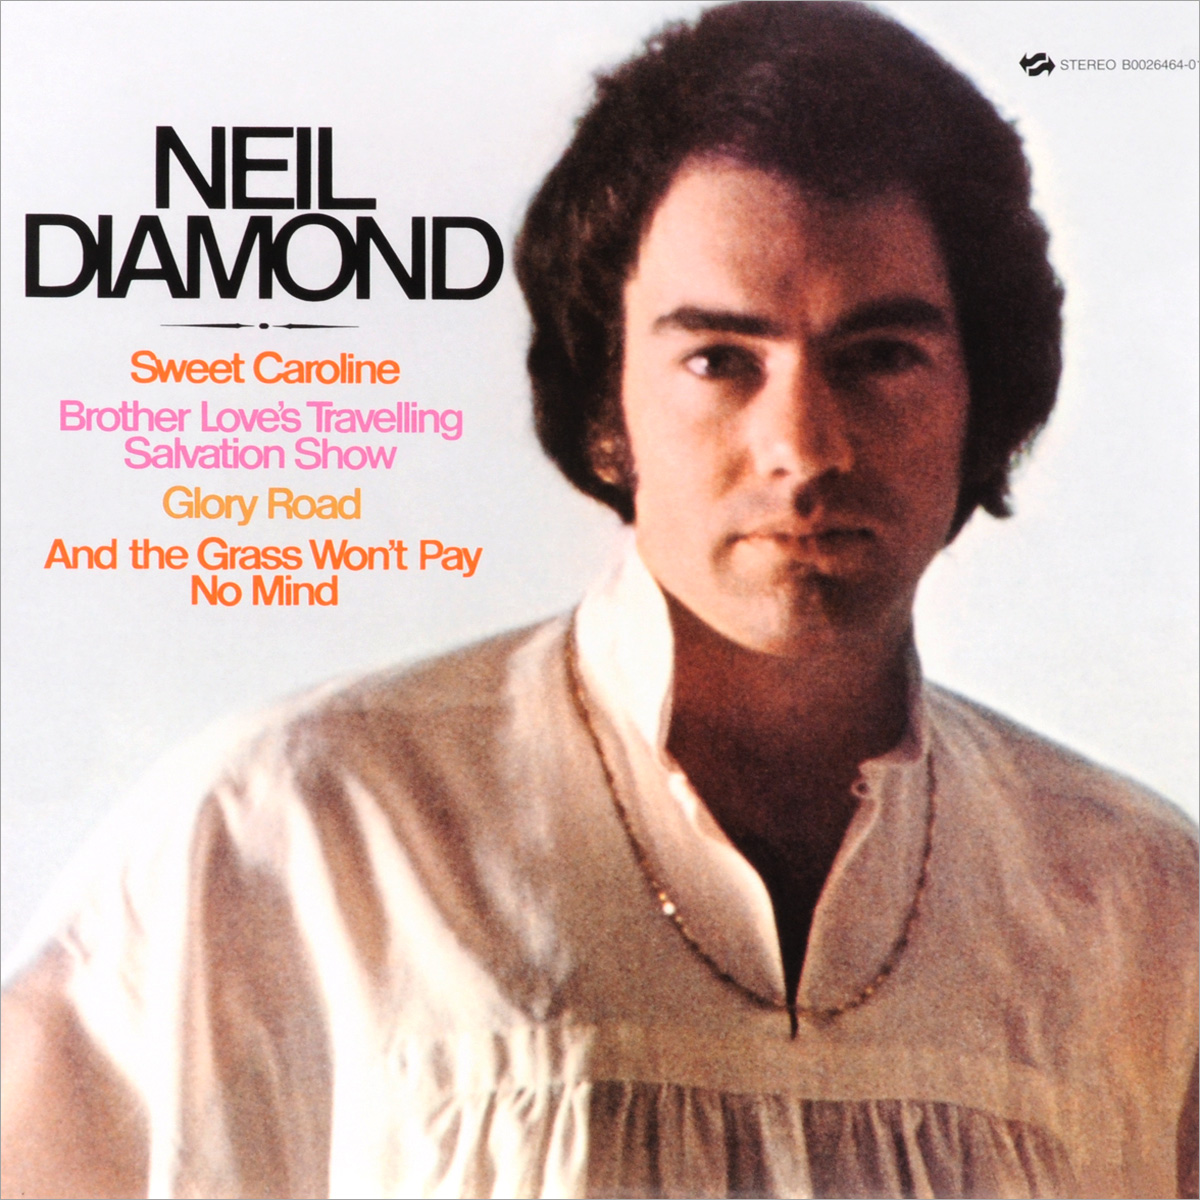 Фото - Нил Даймонд Neil Diamond. Brother Love's Travelling Salvation Show / Sweet Caroline (LP) нил даймонд neil diamond melody road